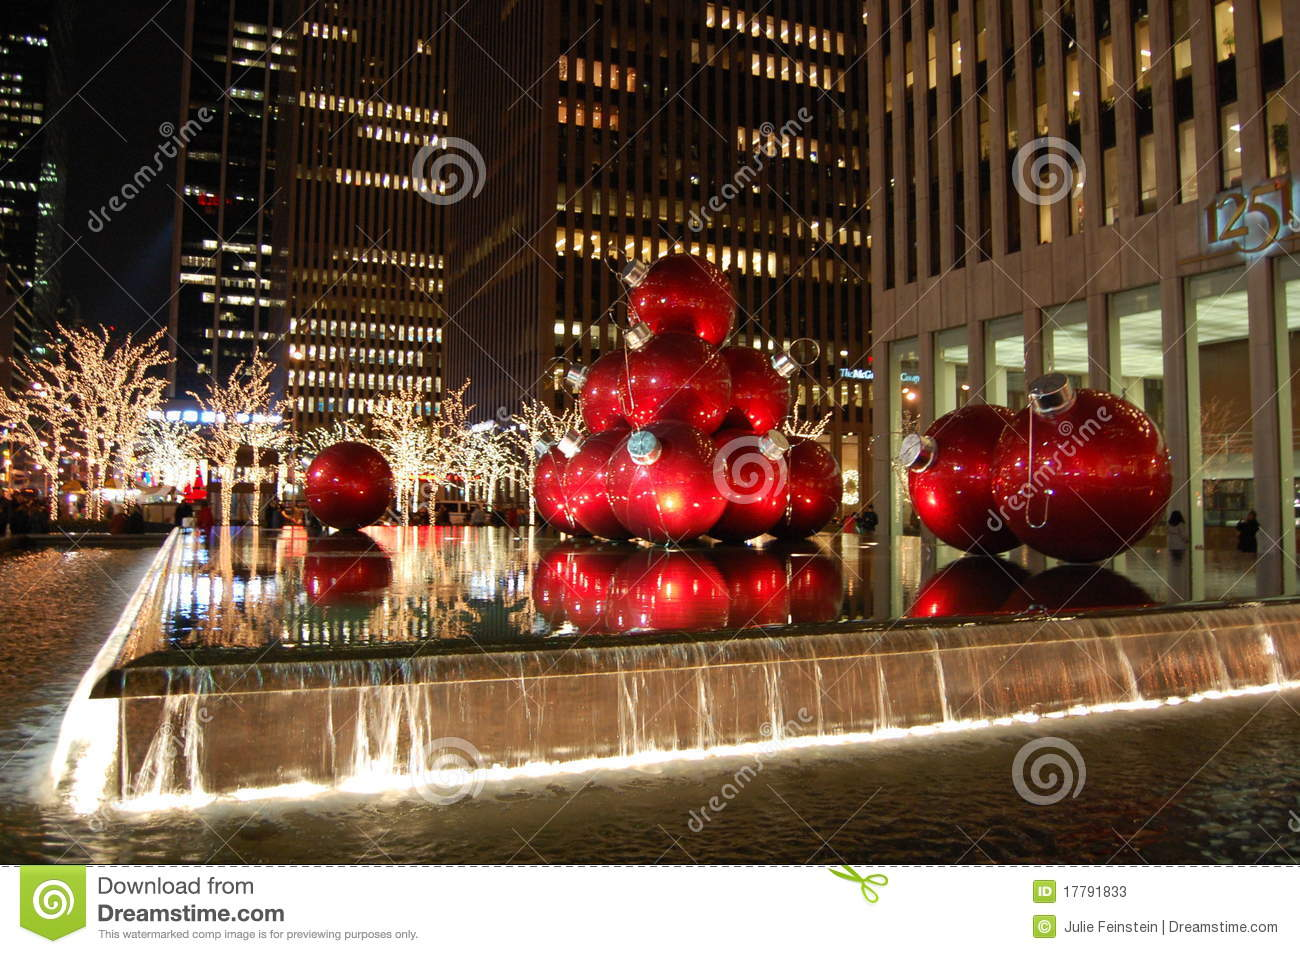 Weihnachten In New York City Redaktionelles Stockfoto - Bild von ...